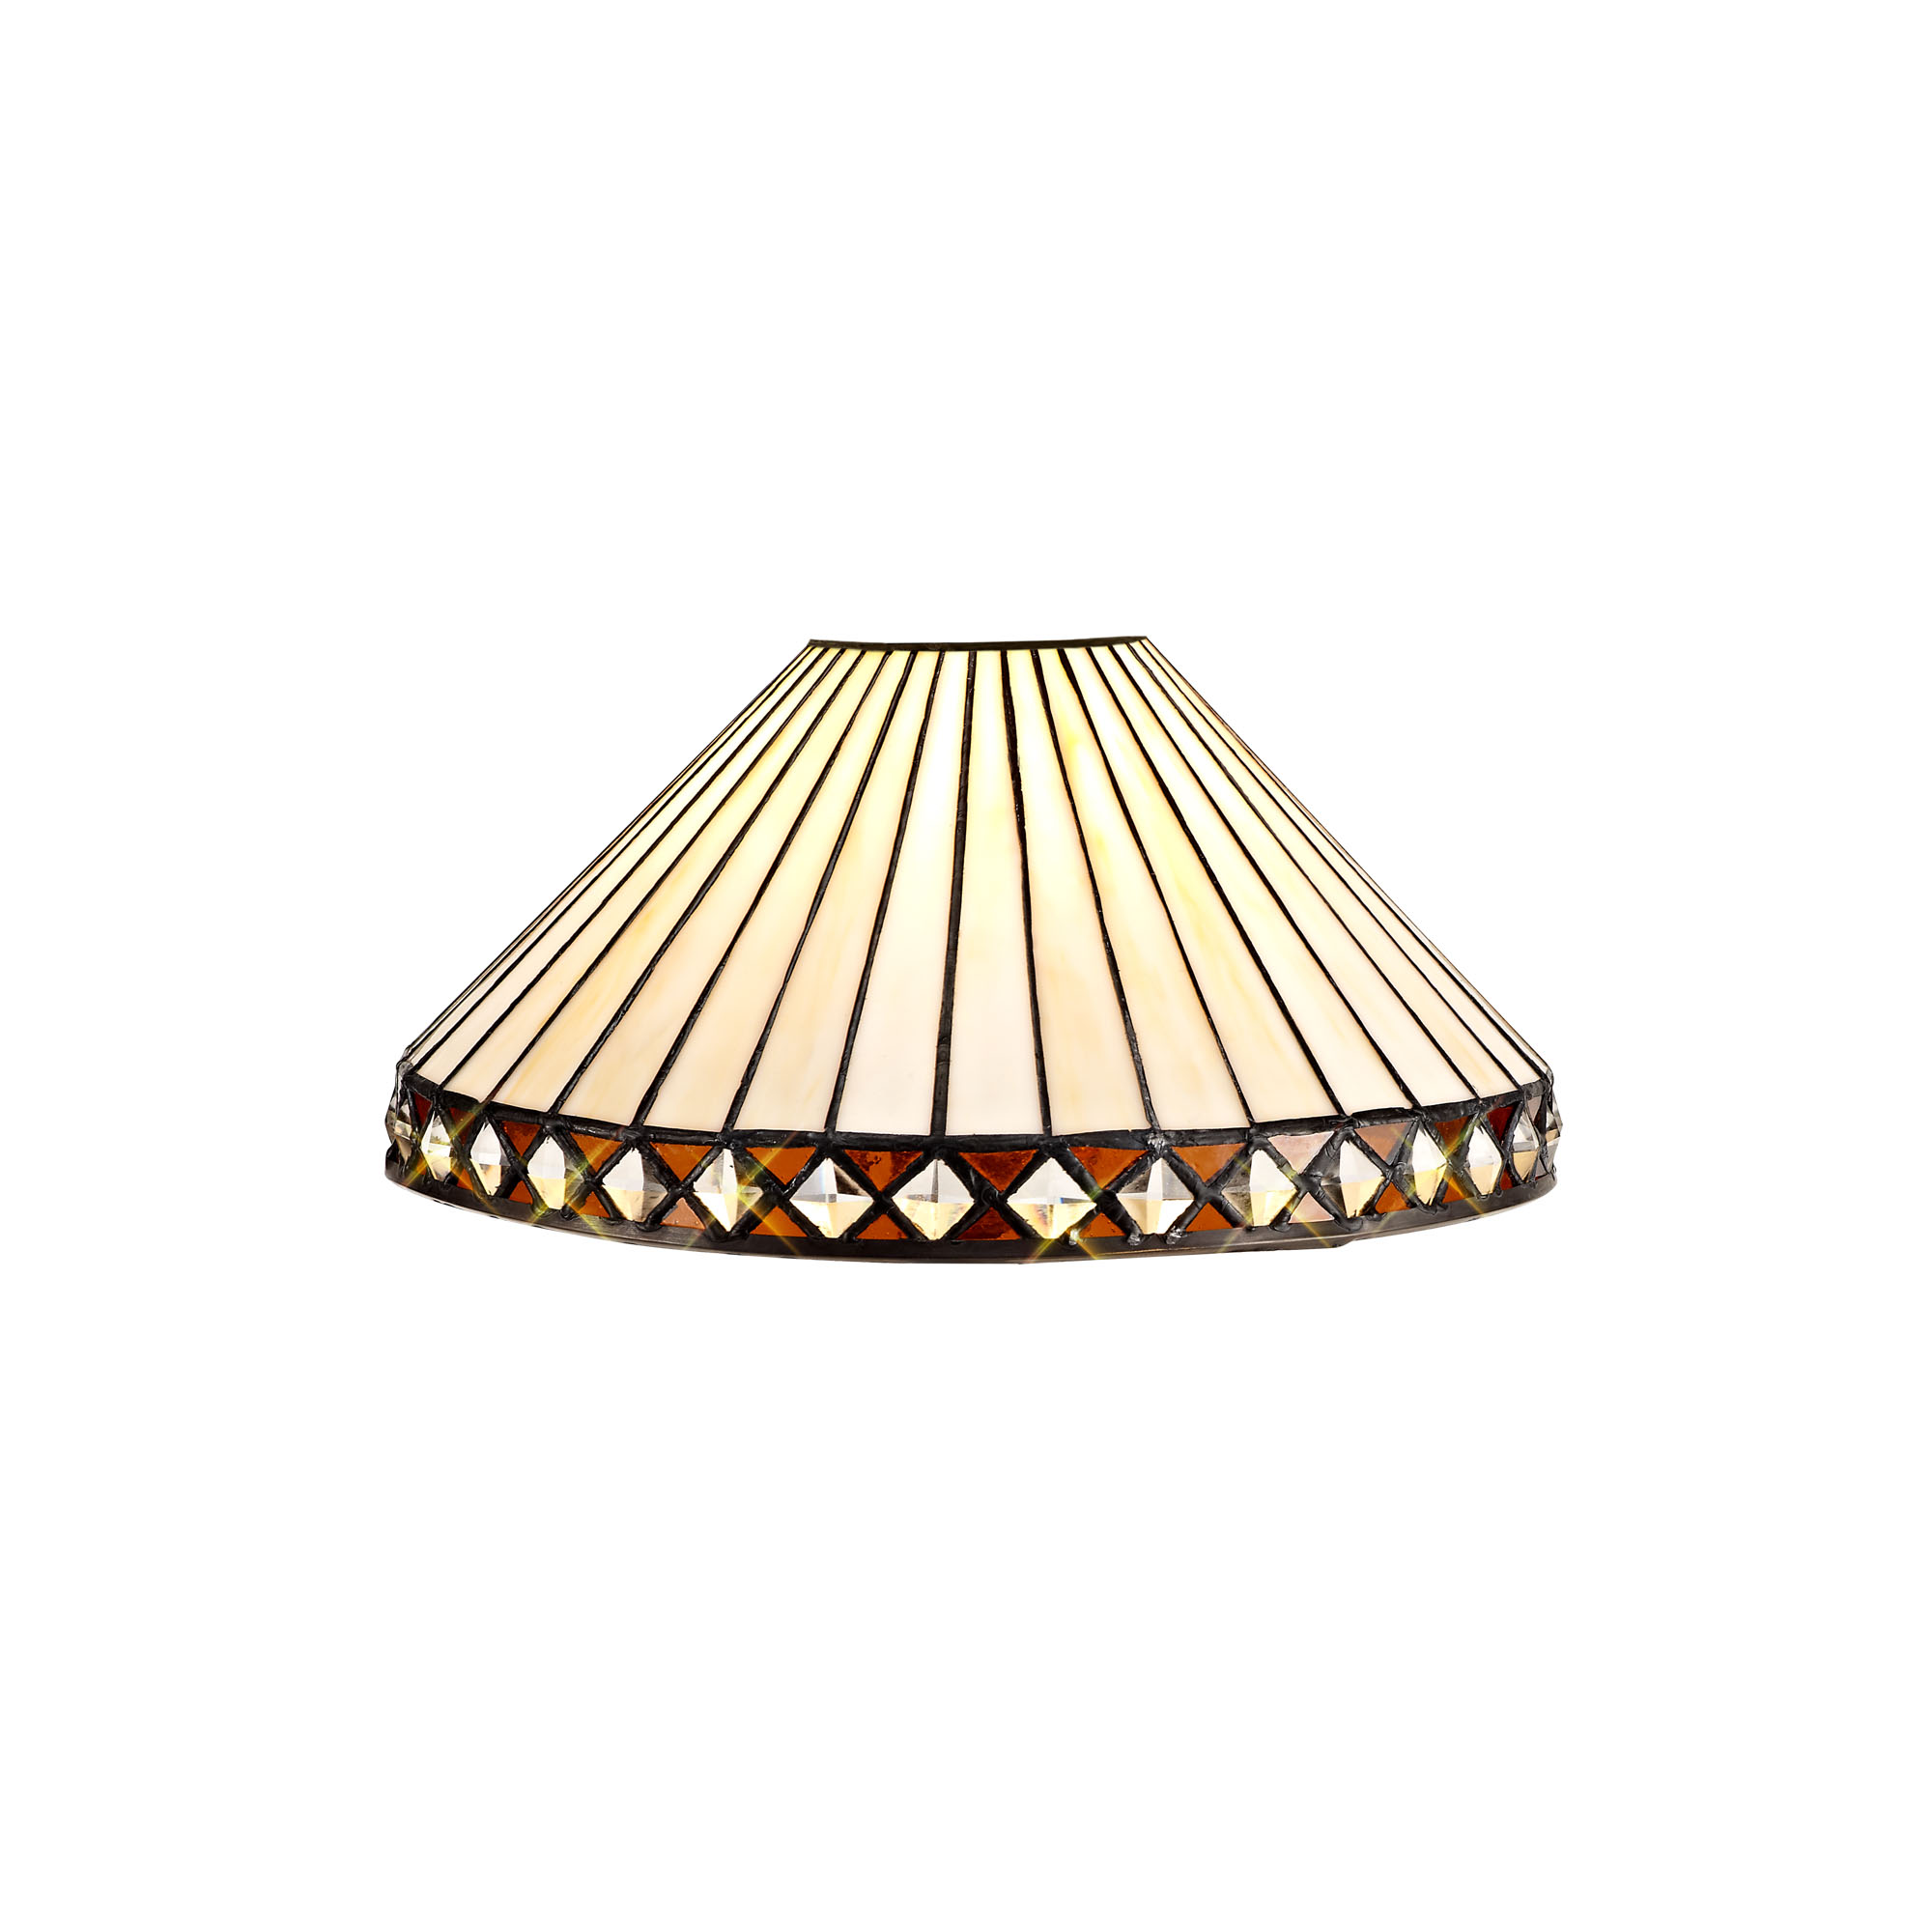 2 Light Downlighter Pendant E27 With 30cm Tiffany Shade, Amber/C/Crystal/Aged Antique Brass